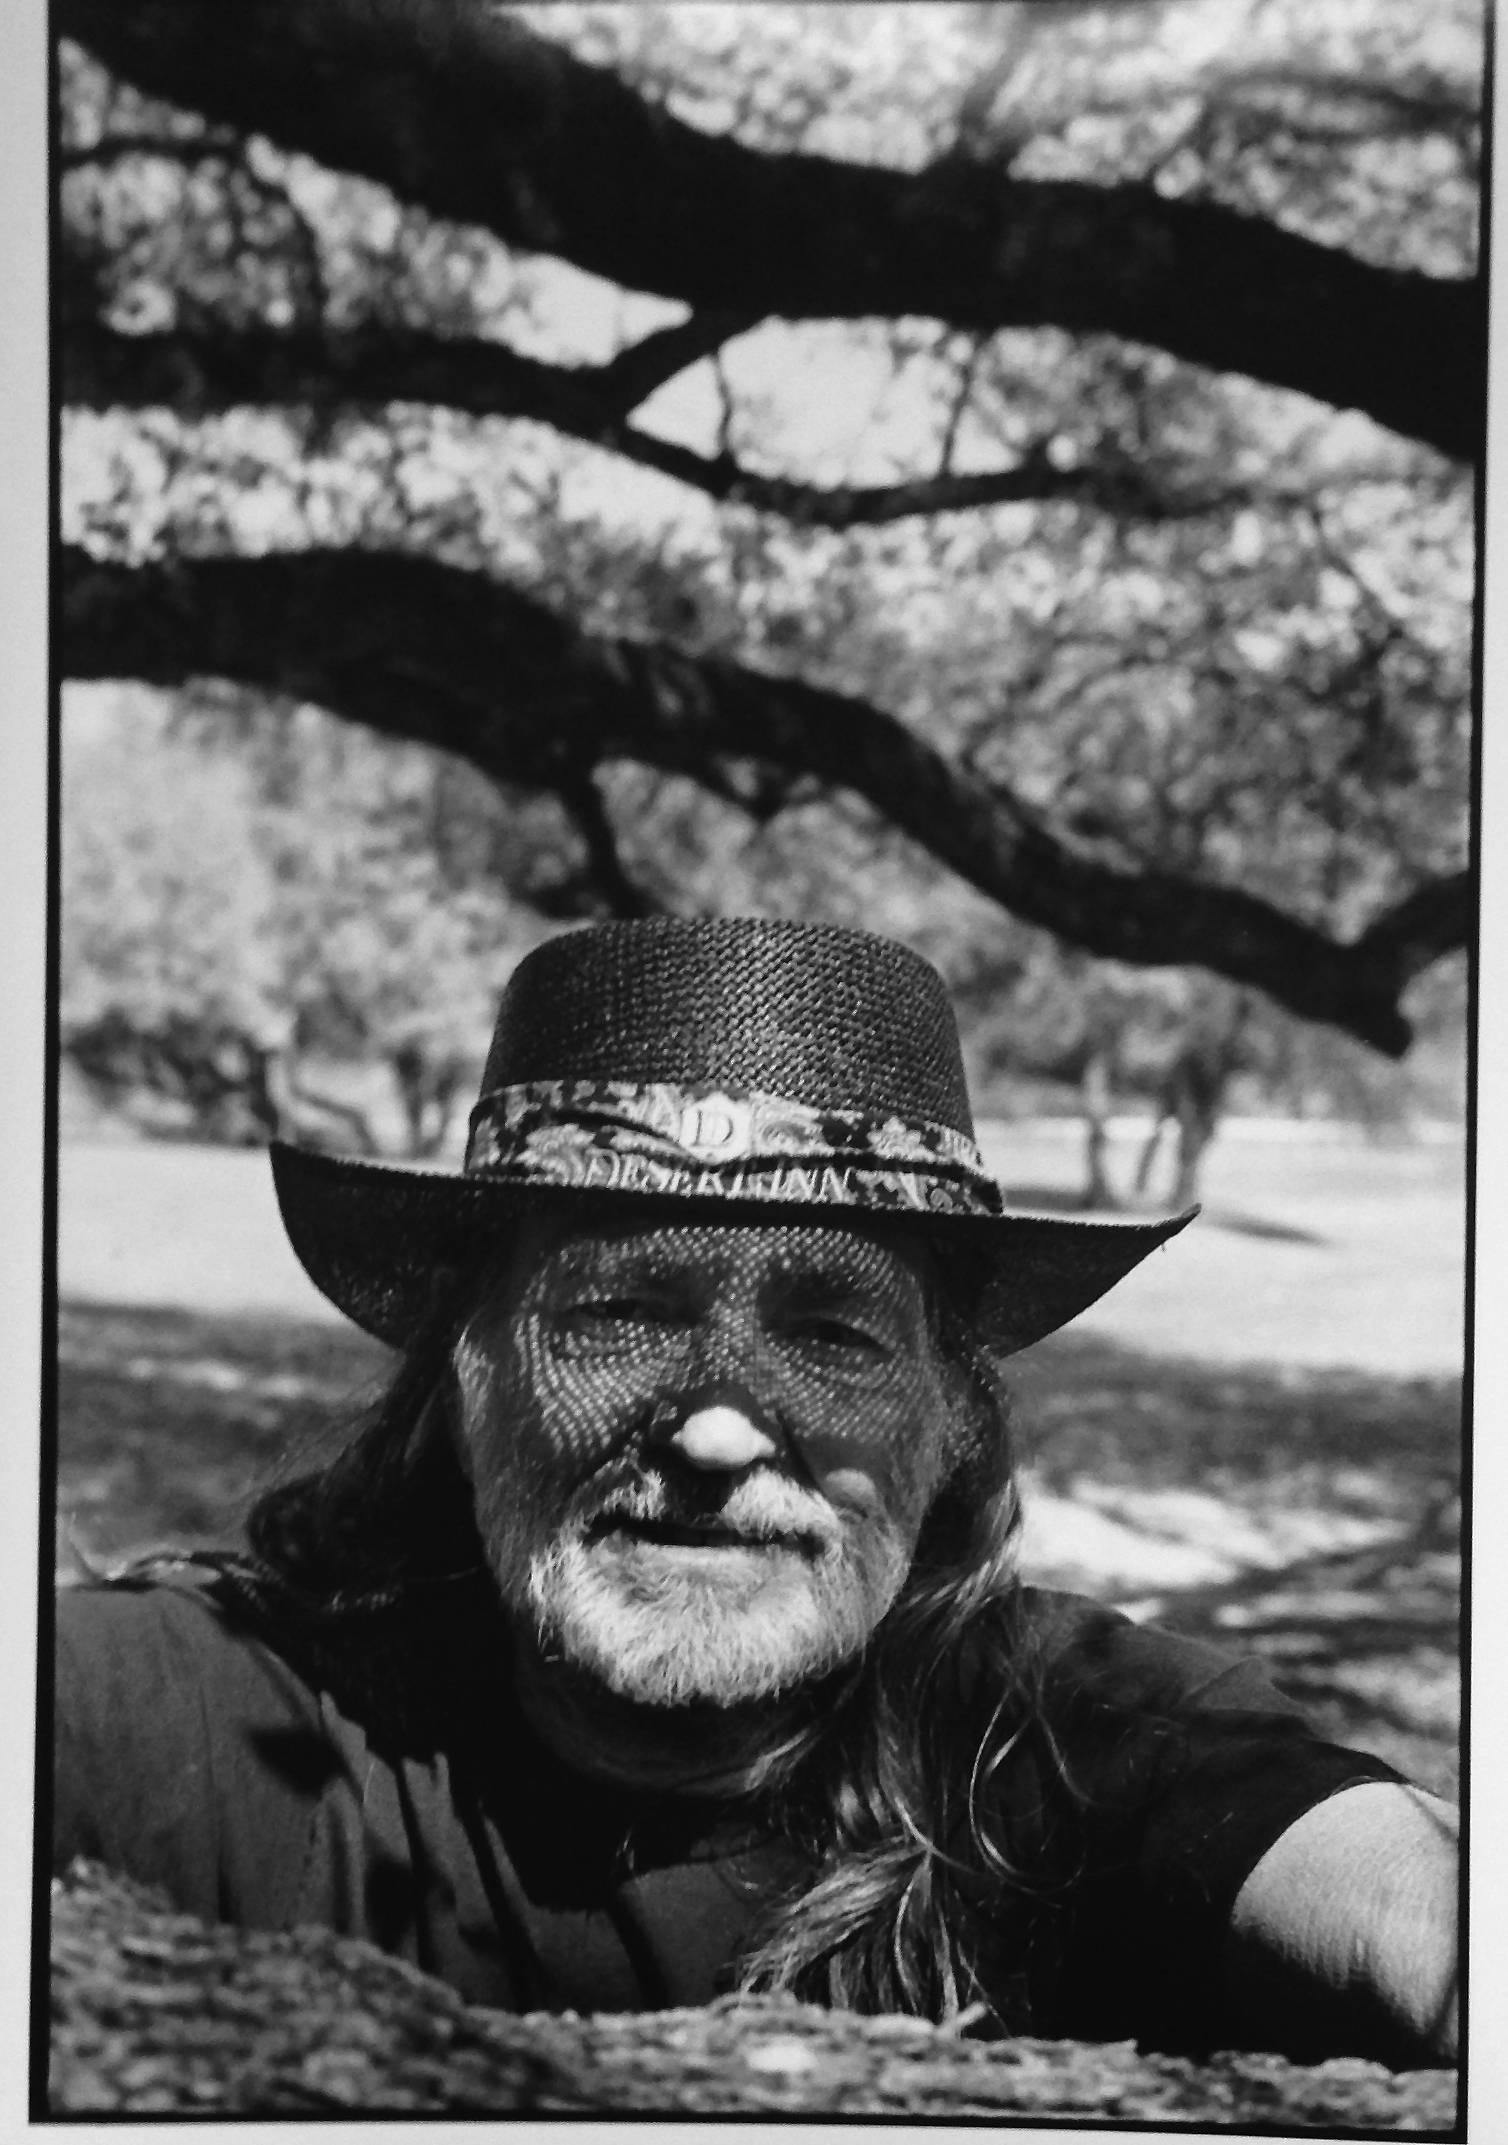 Willy Nelson, Texas, Country Music Singer Portrait Photography 1990s